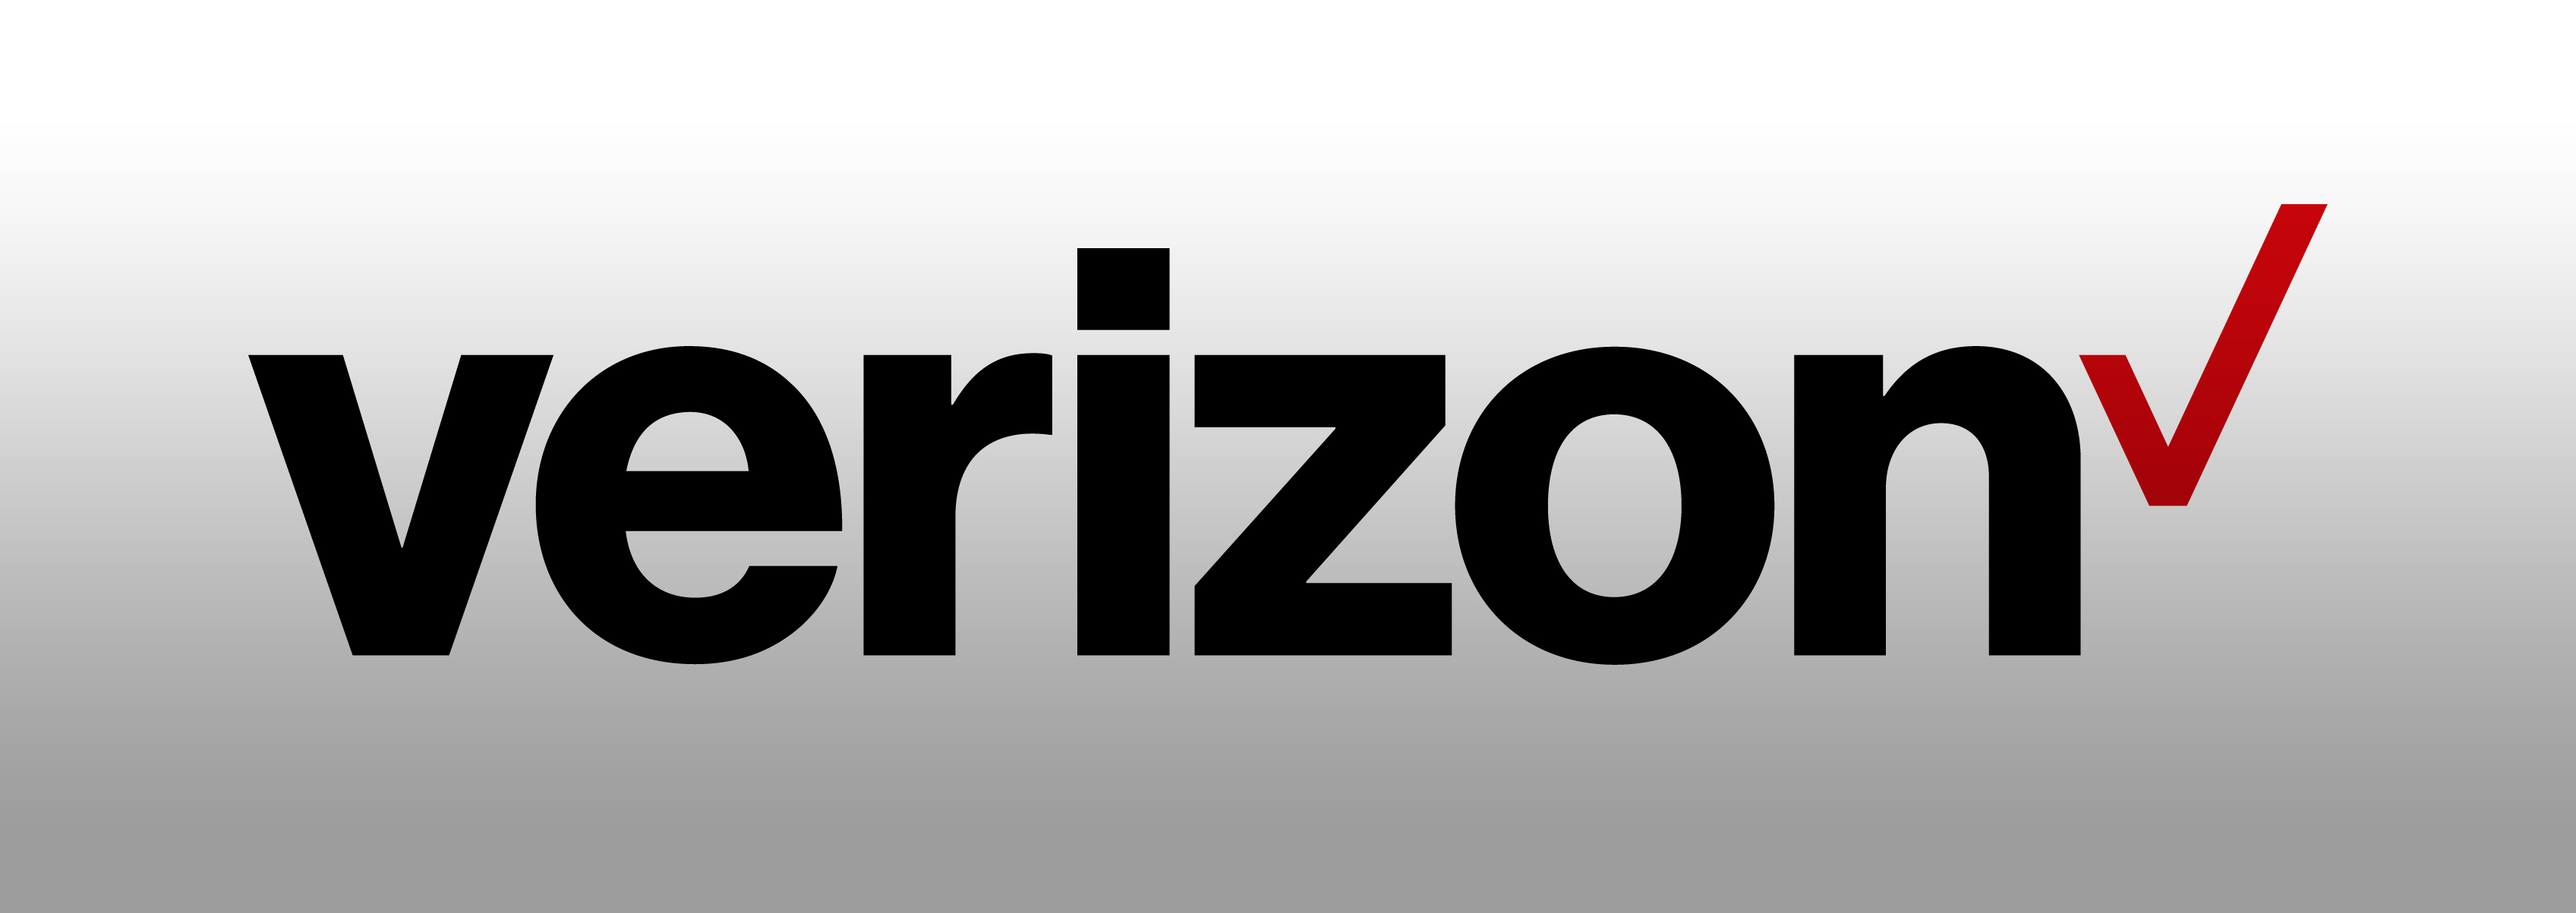 Customer Records For Millions Of Verizon Subscribers Exposed